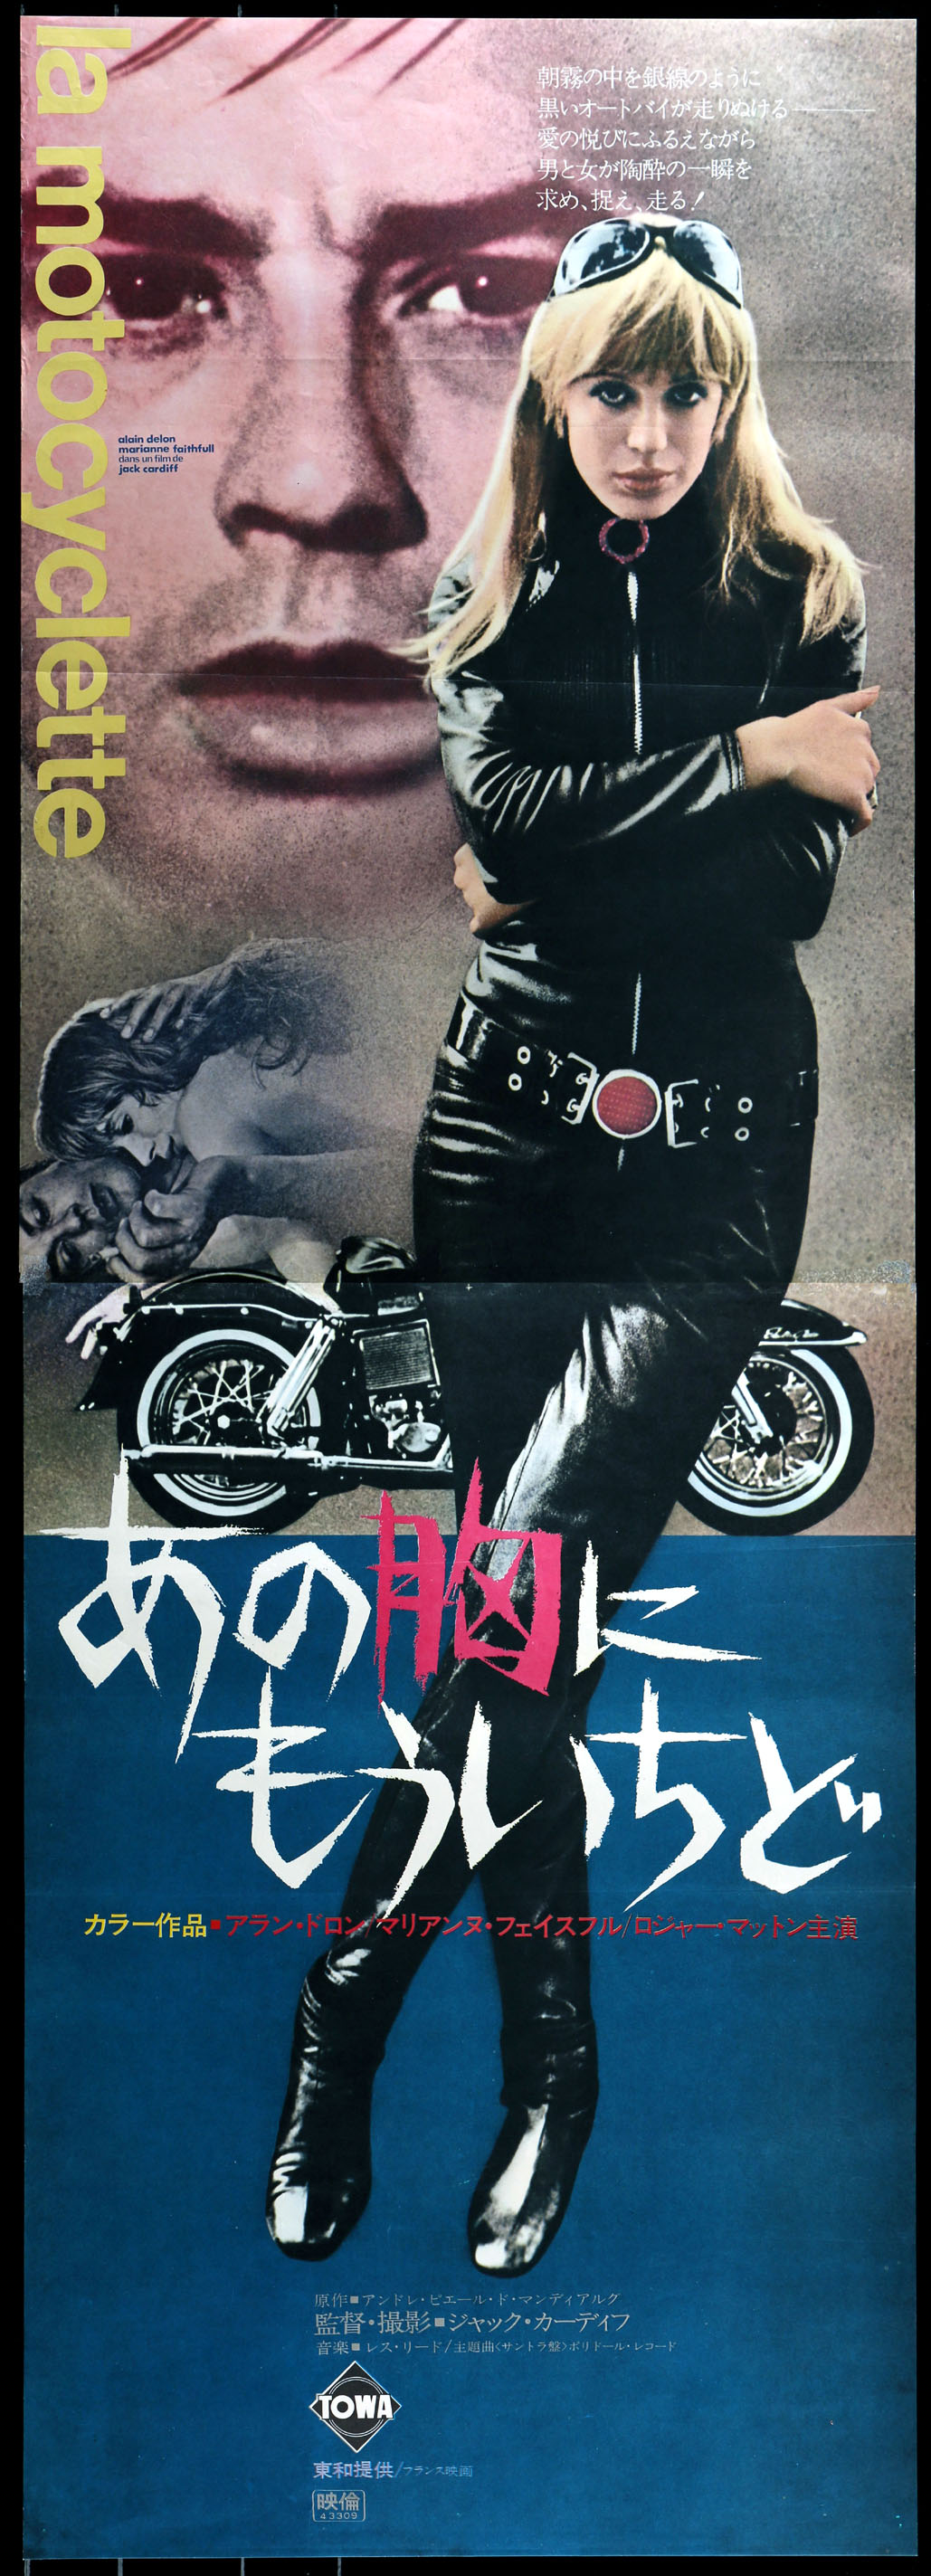 GIRL ON A MOTORCYLE (aka Naked Under Leather) @ FilmPosters.com